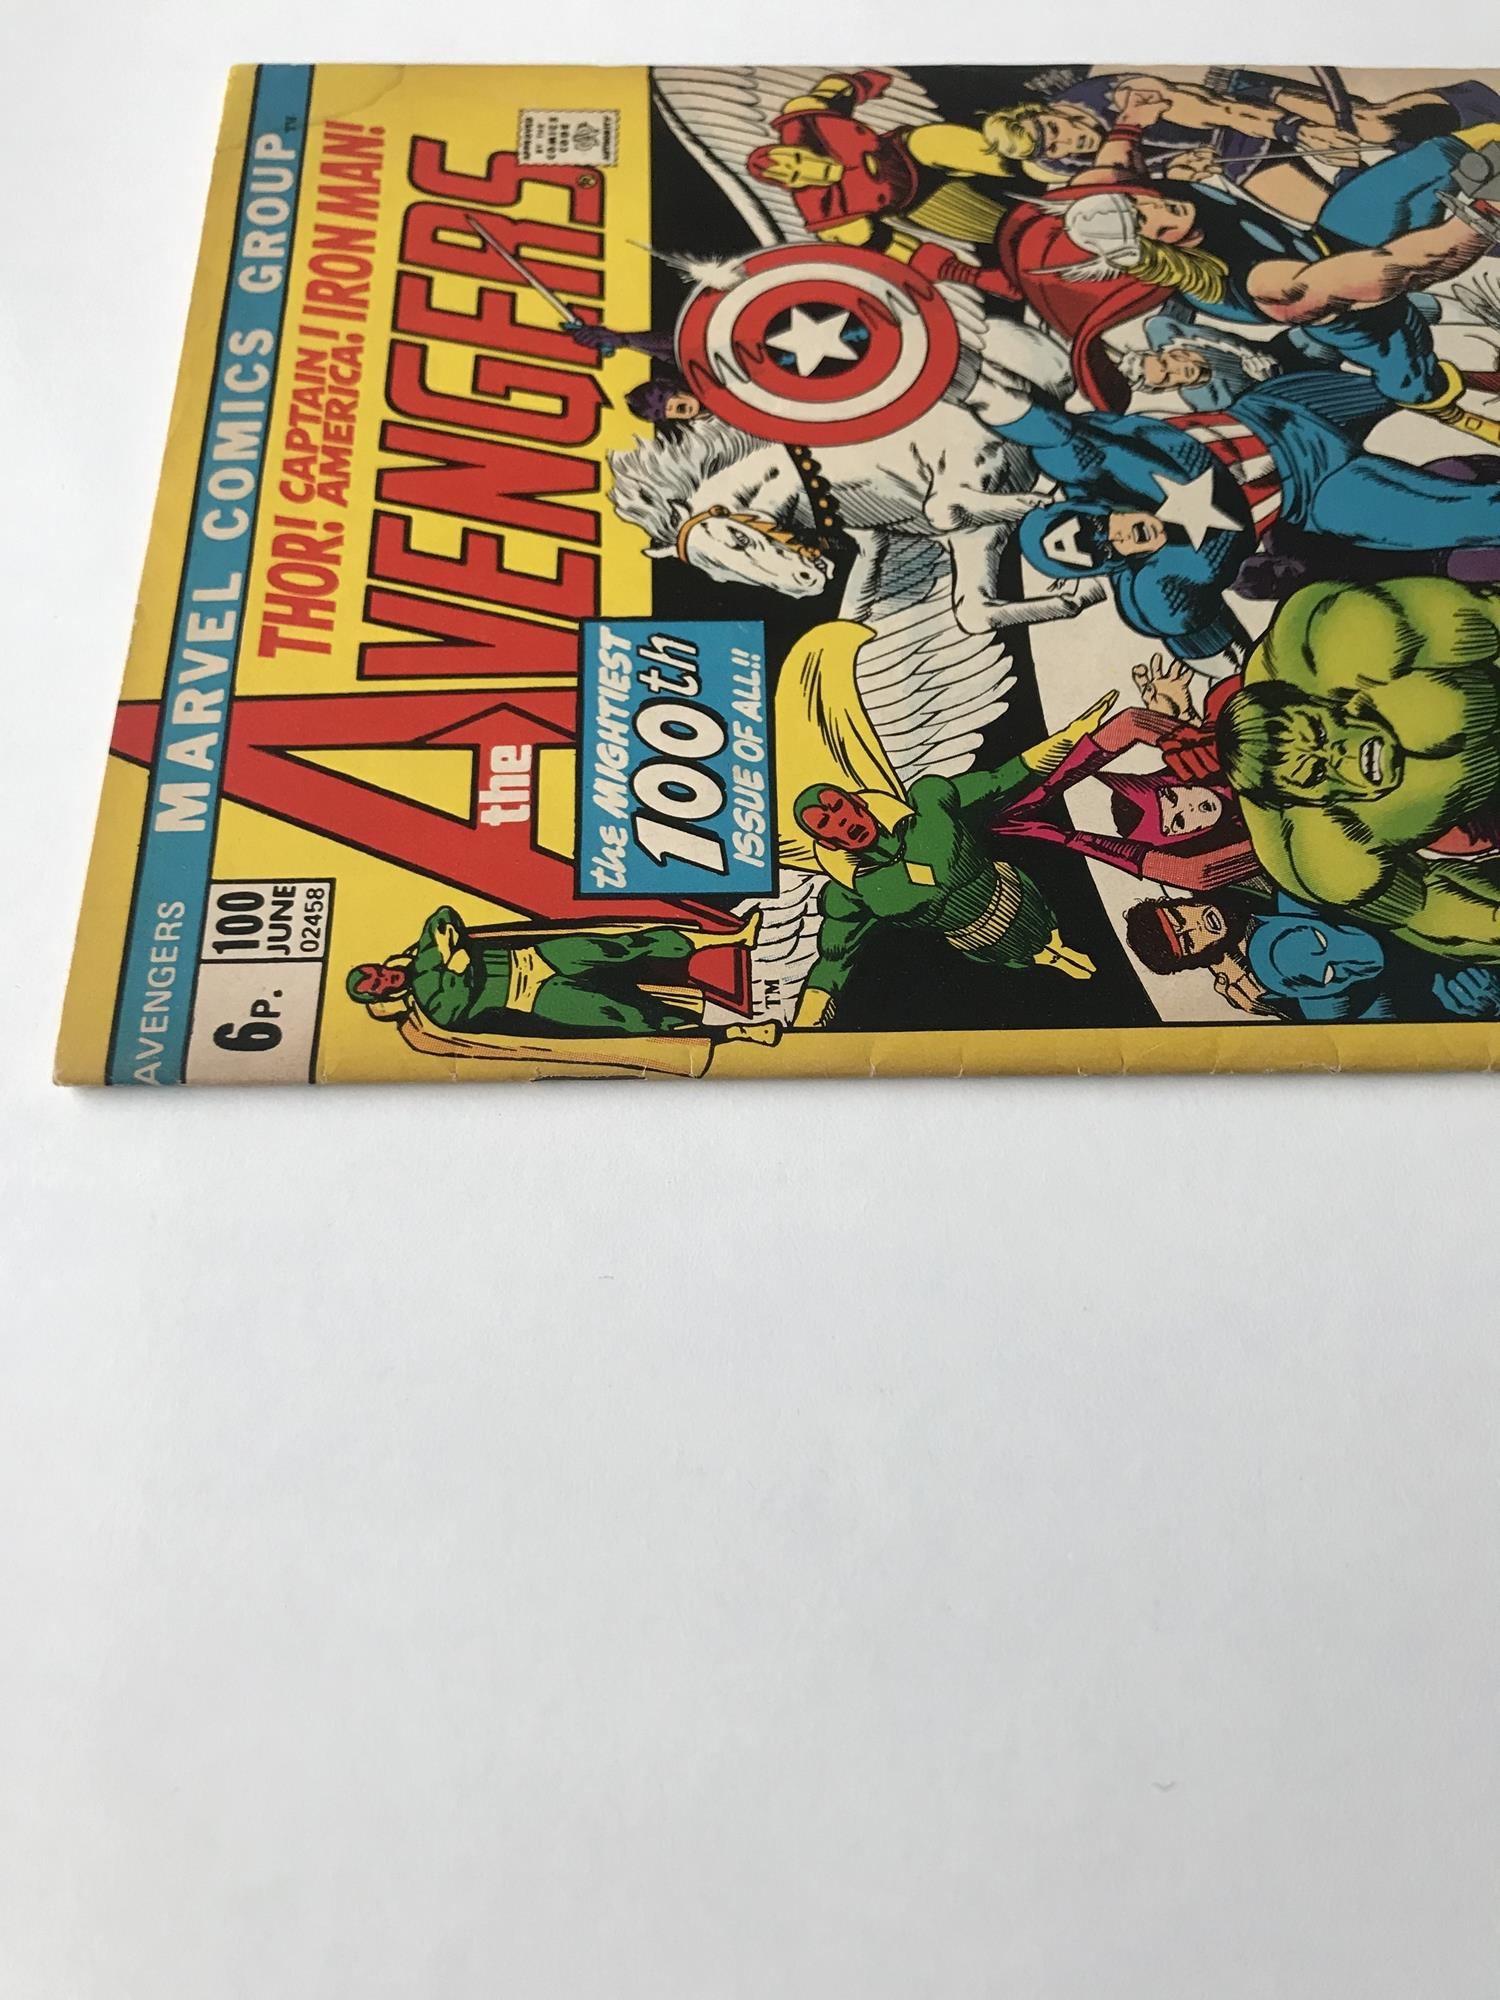 Lot 44 - AVENGERS # 100 (1972 - MARVEL - Pence Copy) - Barry Windsor Smith cover and interior art +